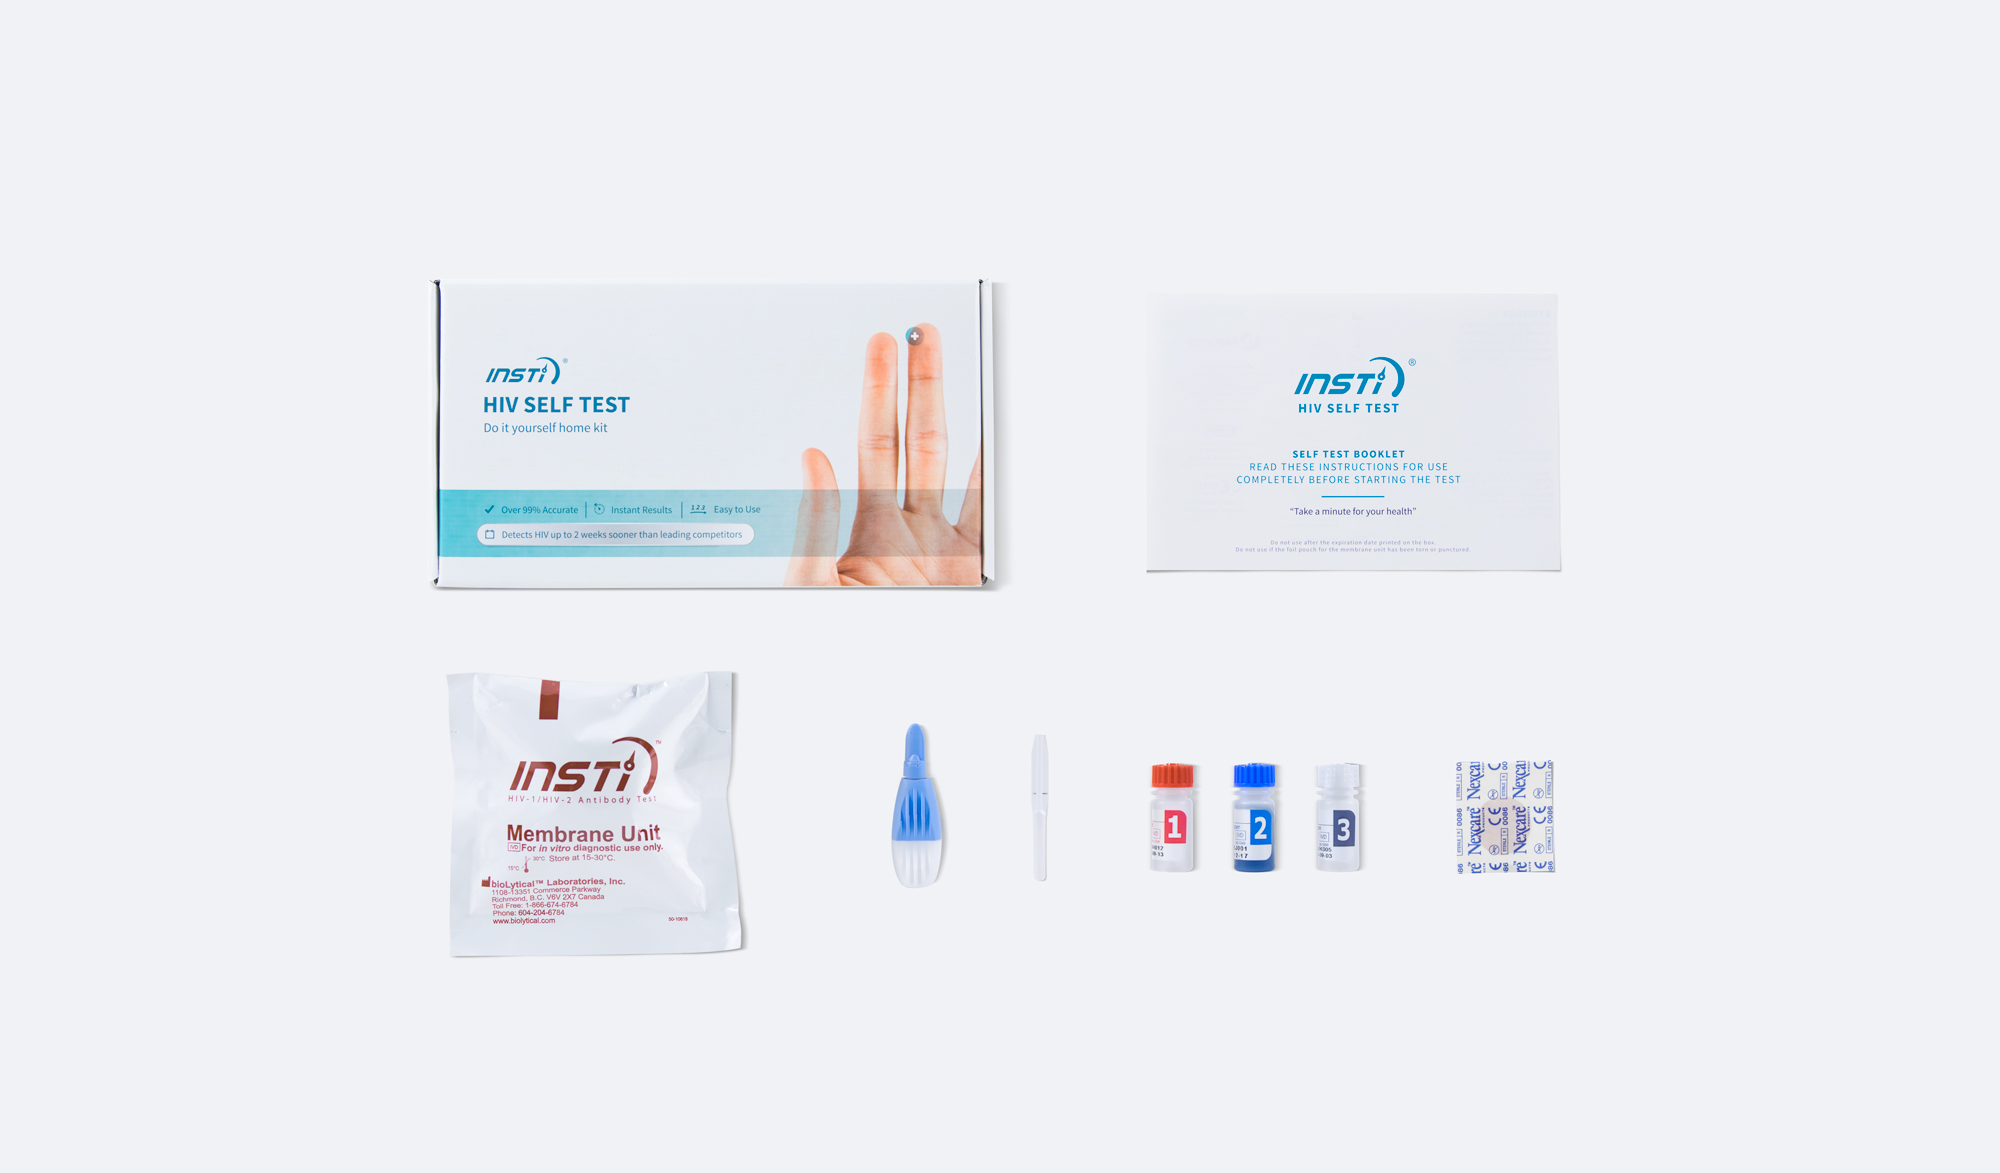 insti-hiv-selft-test